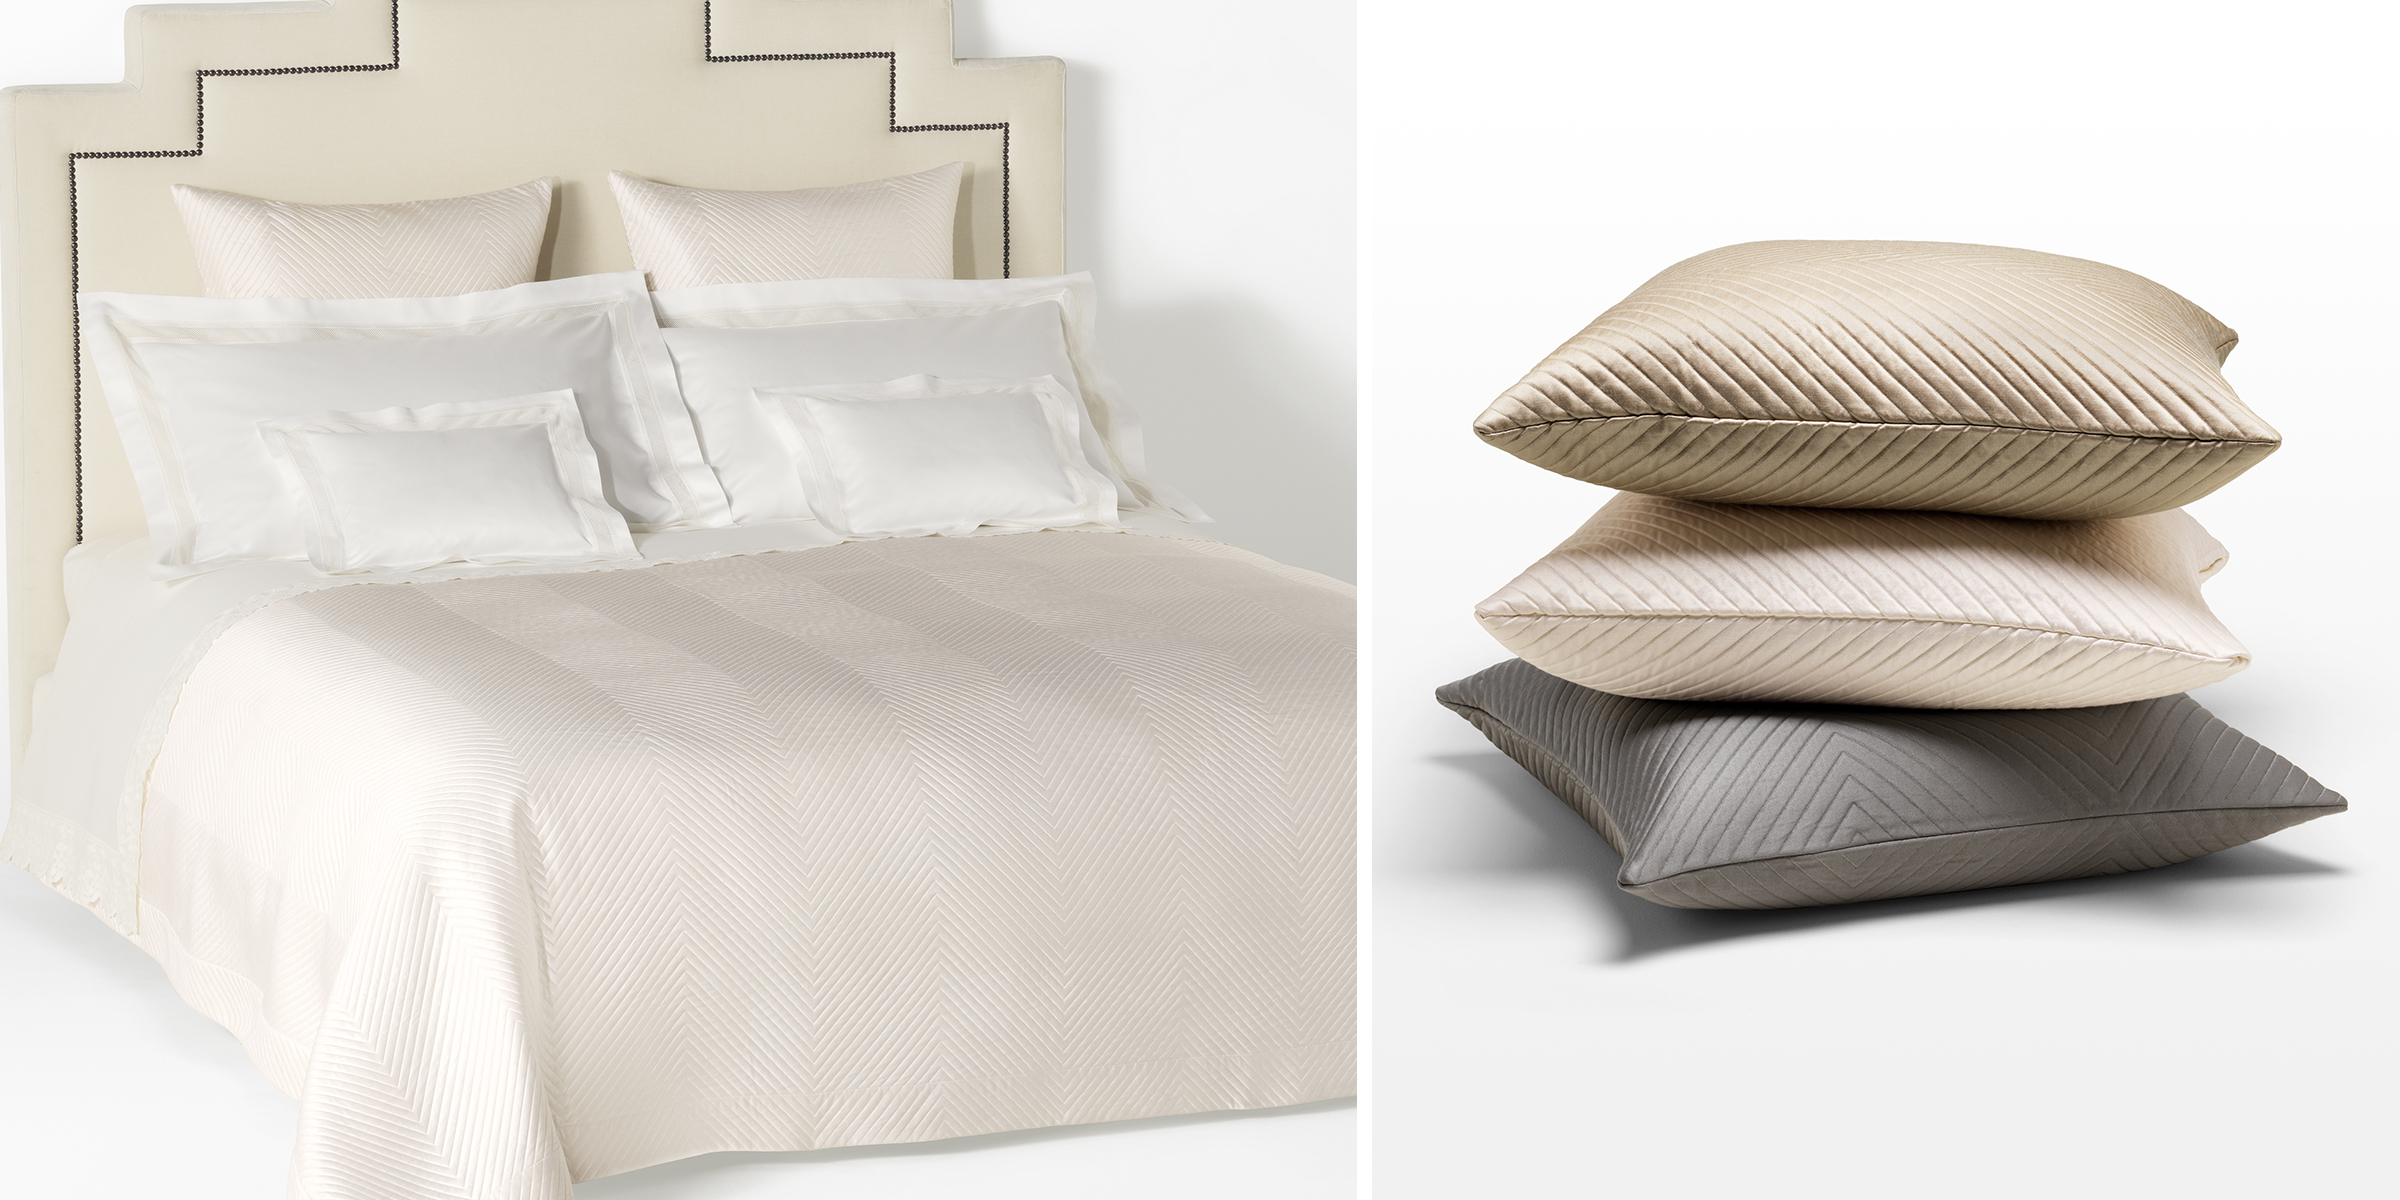 Choose bed linen for the first wedding night 49